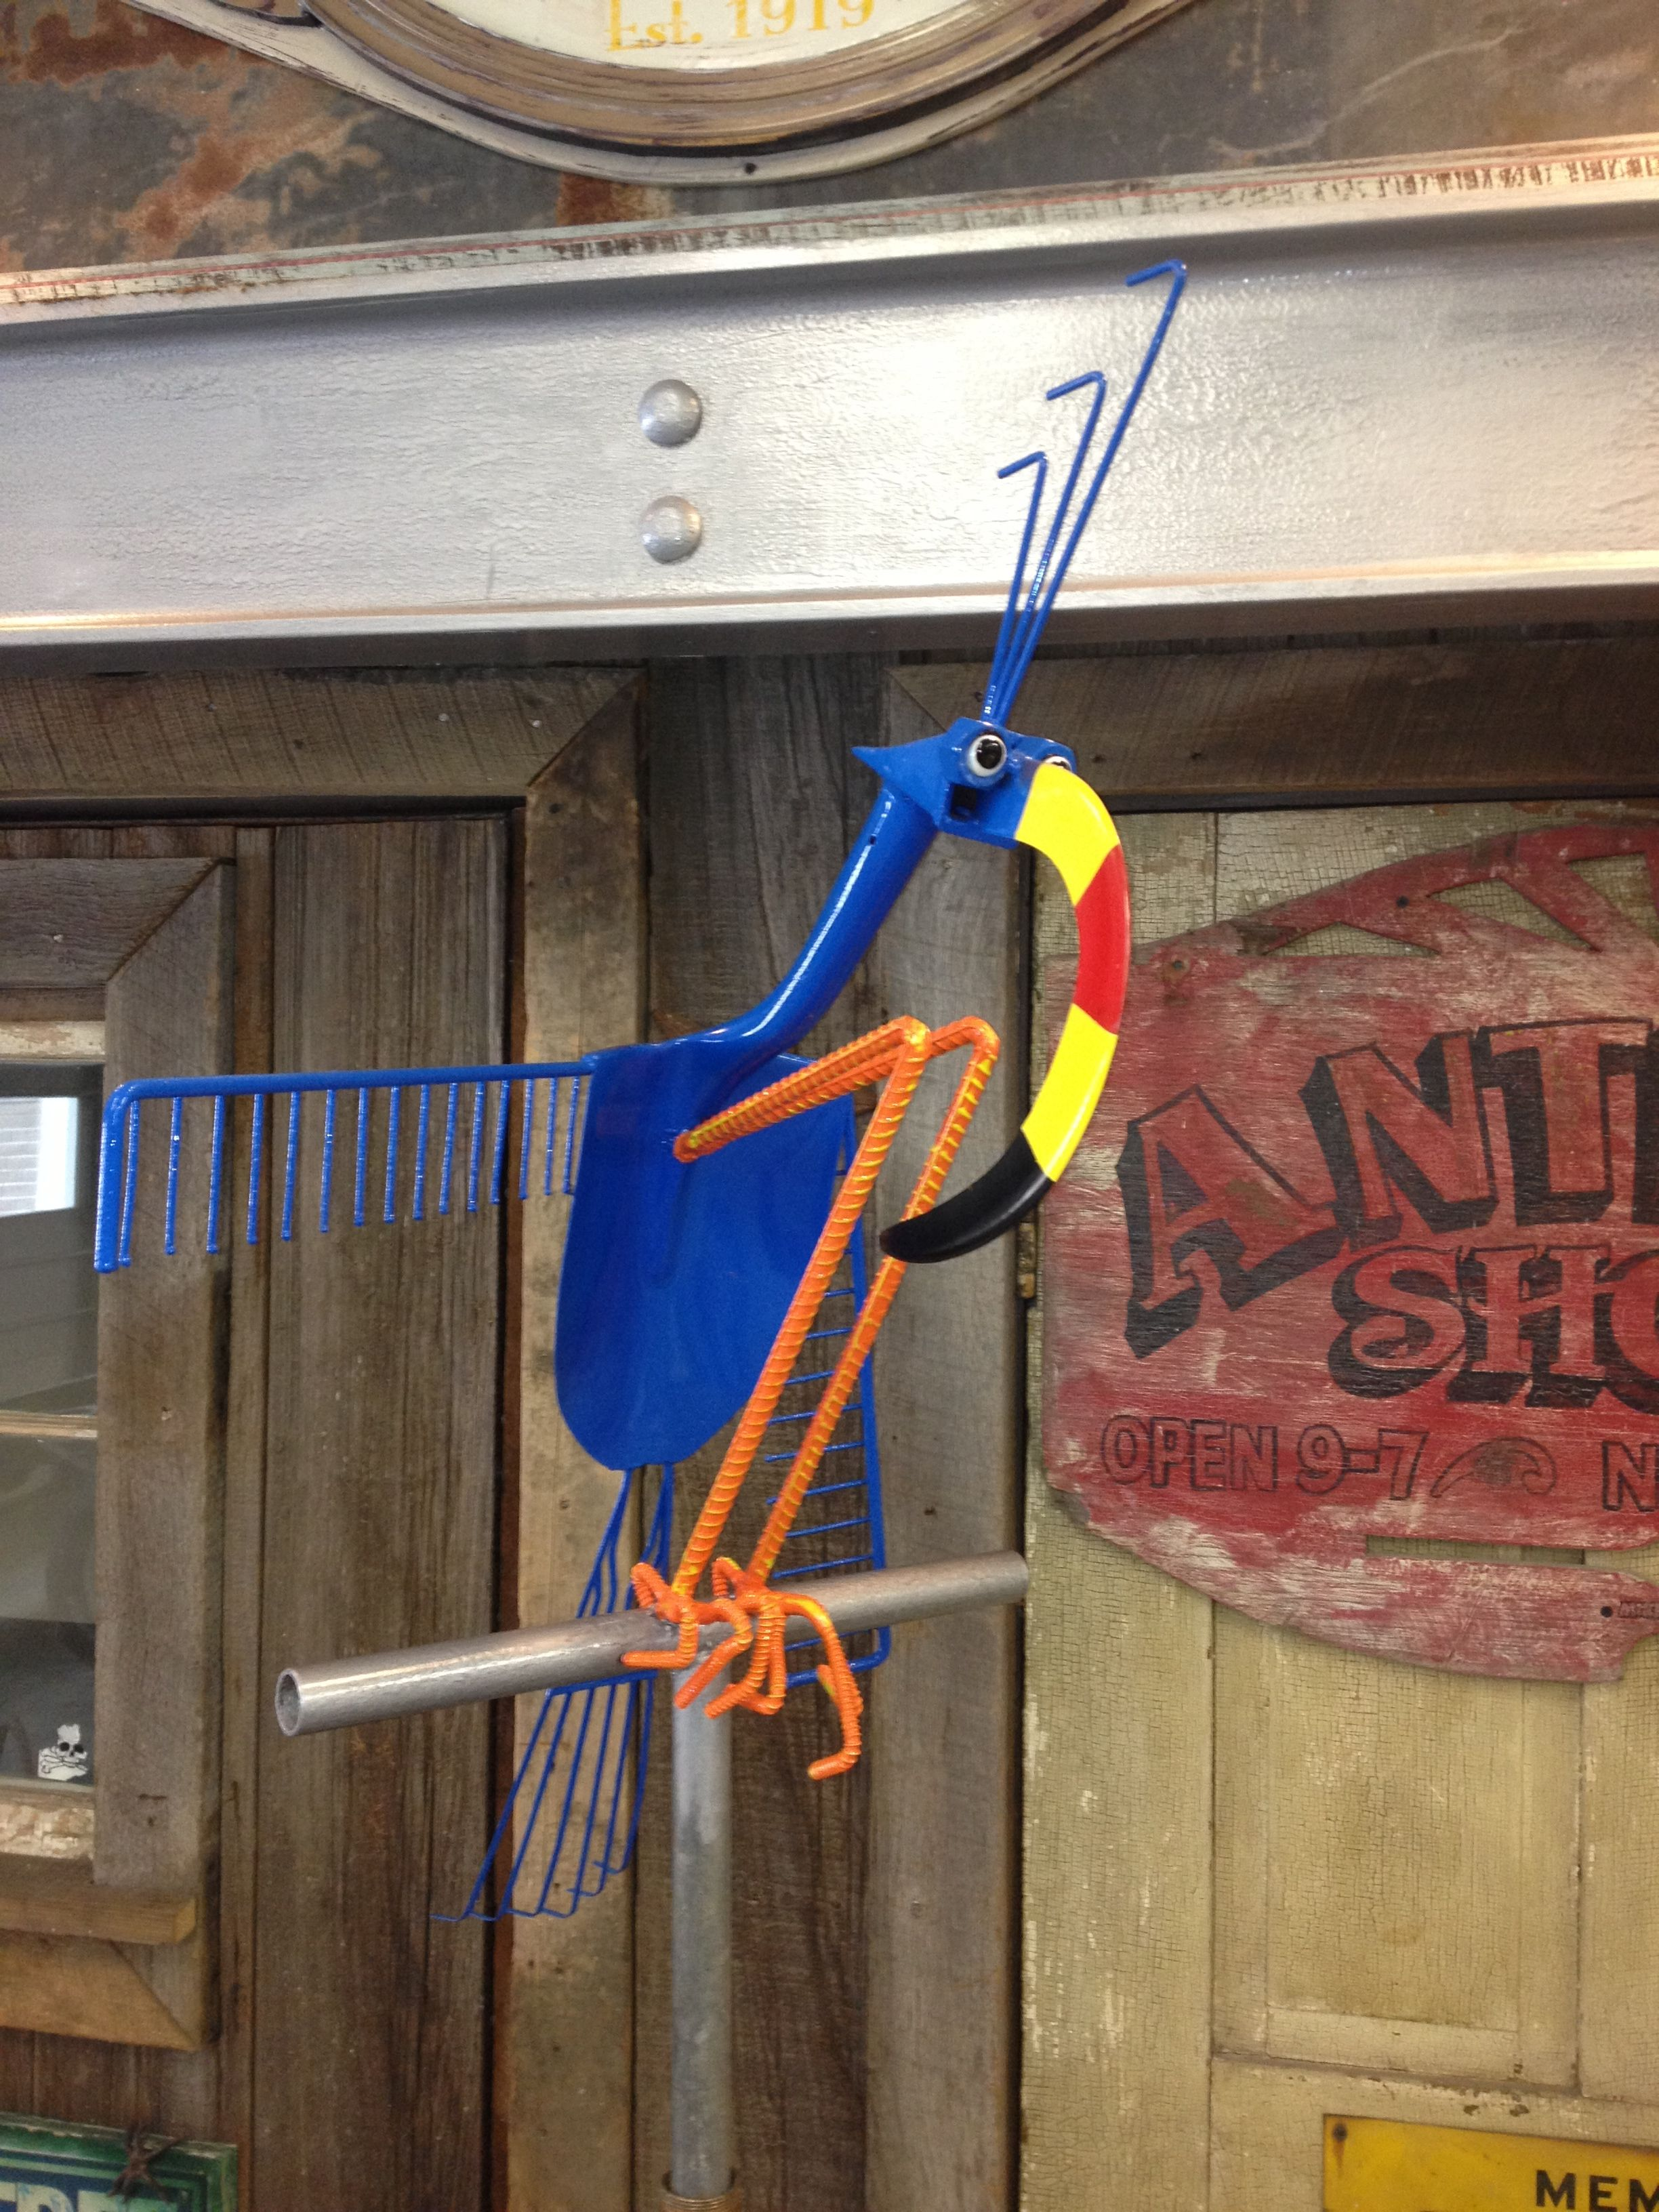 Built from vintage yard tools that were purchased at an ...